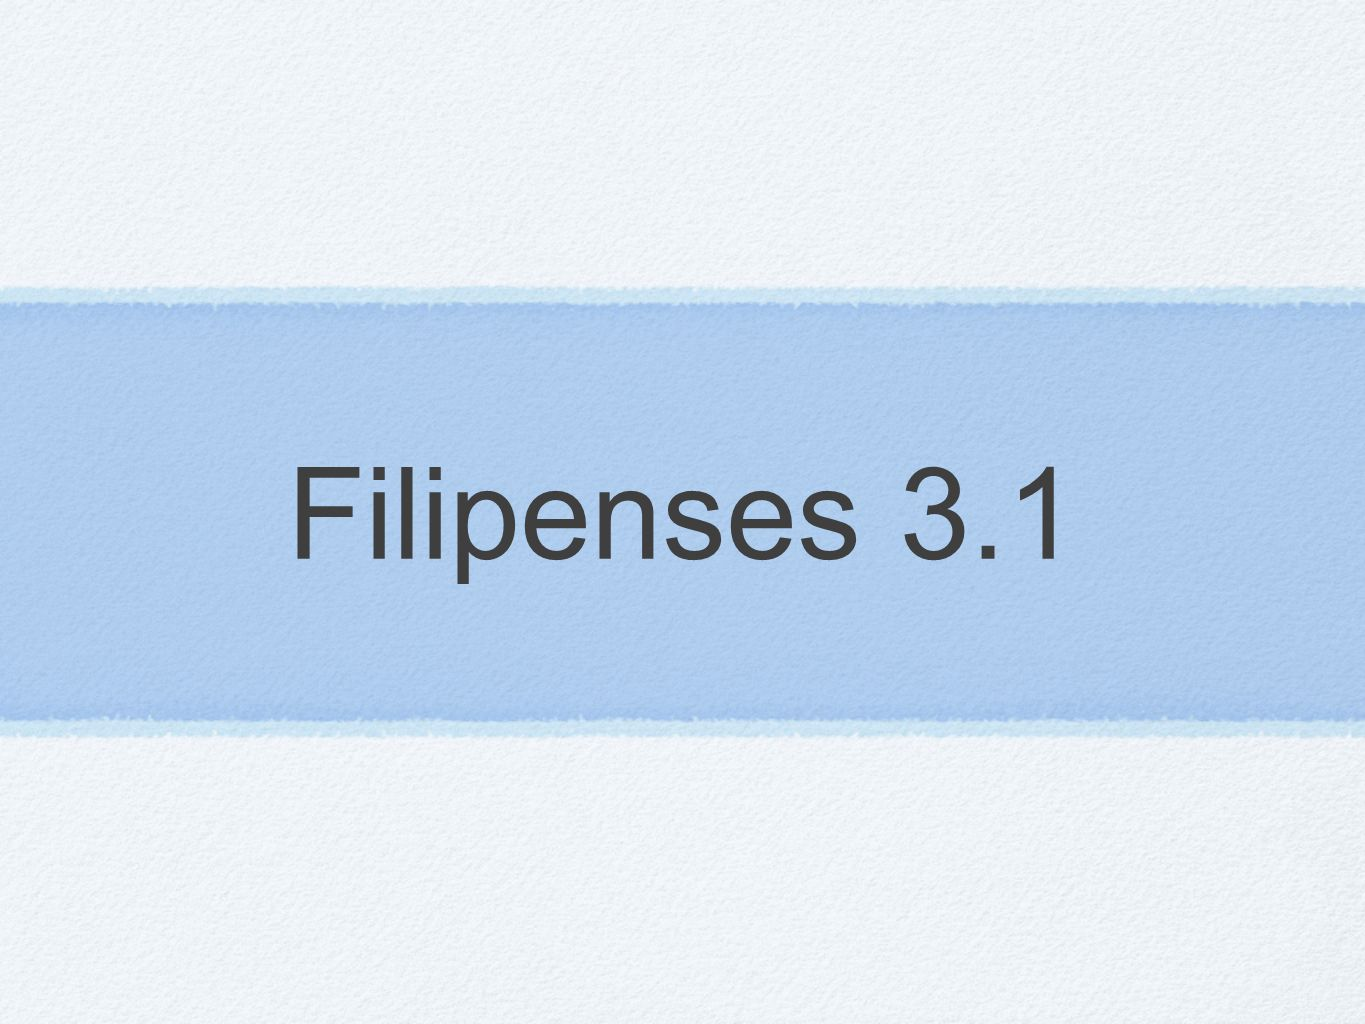 Filipenses 3.1